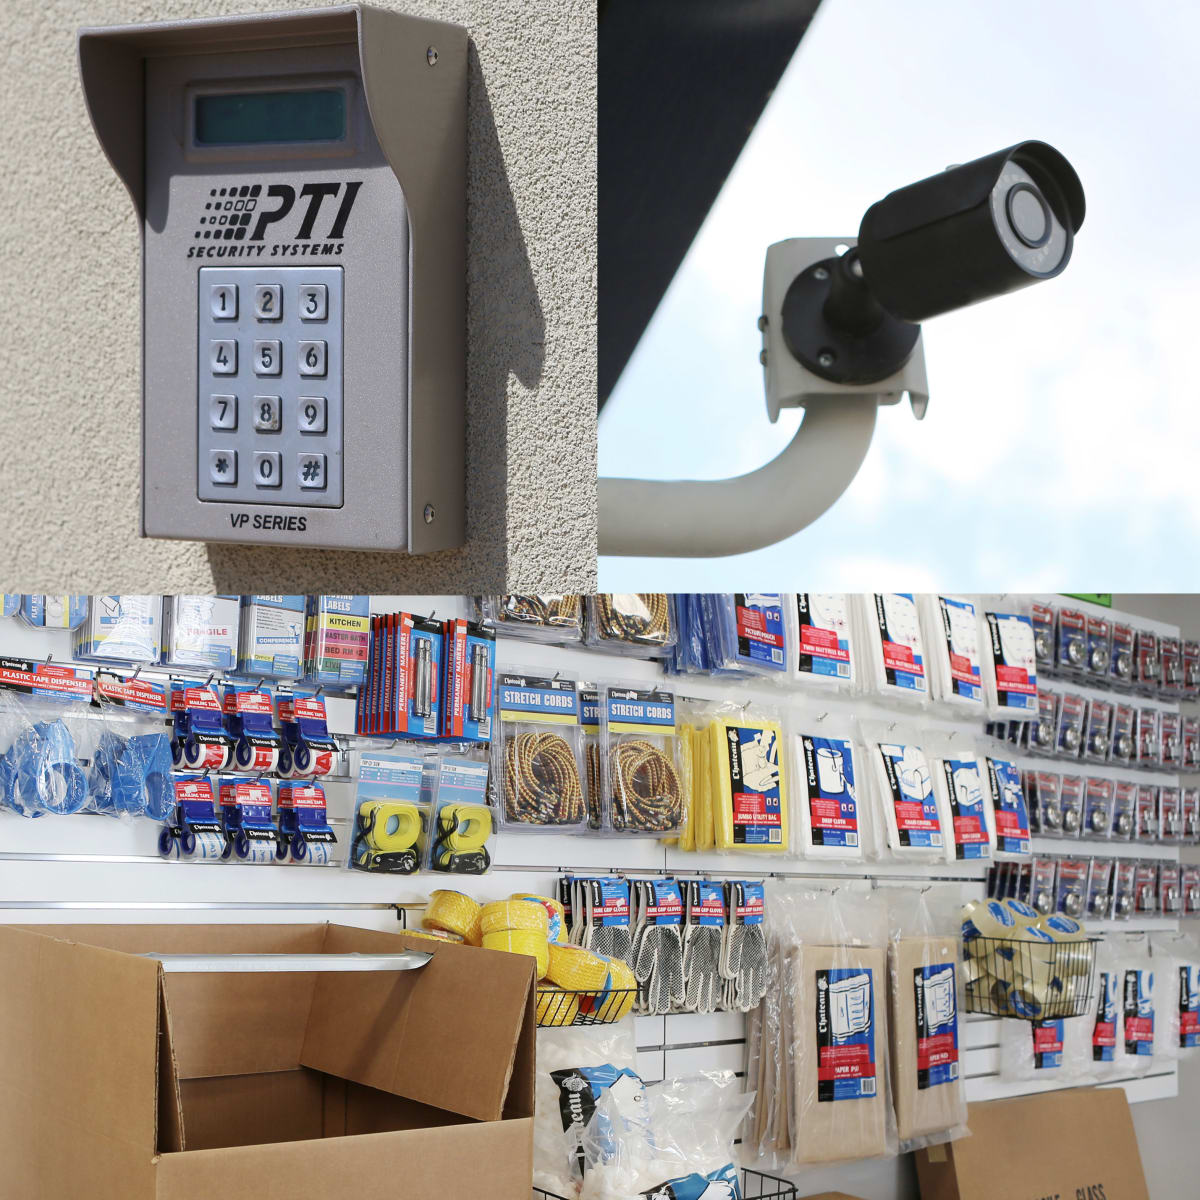 We provide 24 hour security monitoring and sell various moving and packing supplies at StoreSmart Self-Storage in Summerville, South Carolina